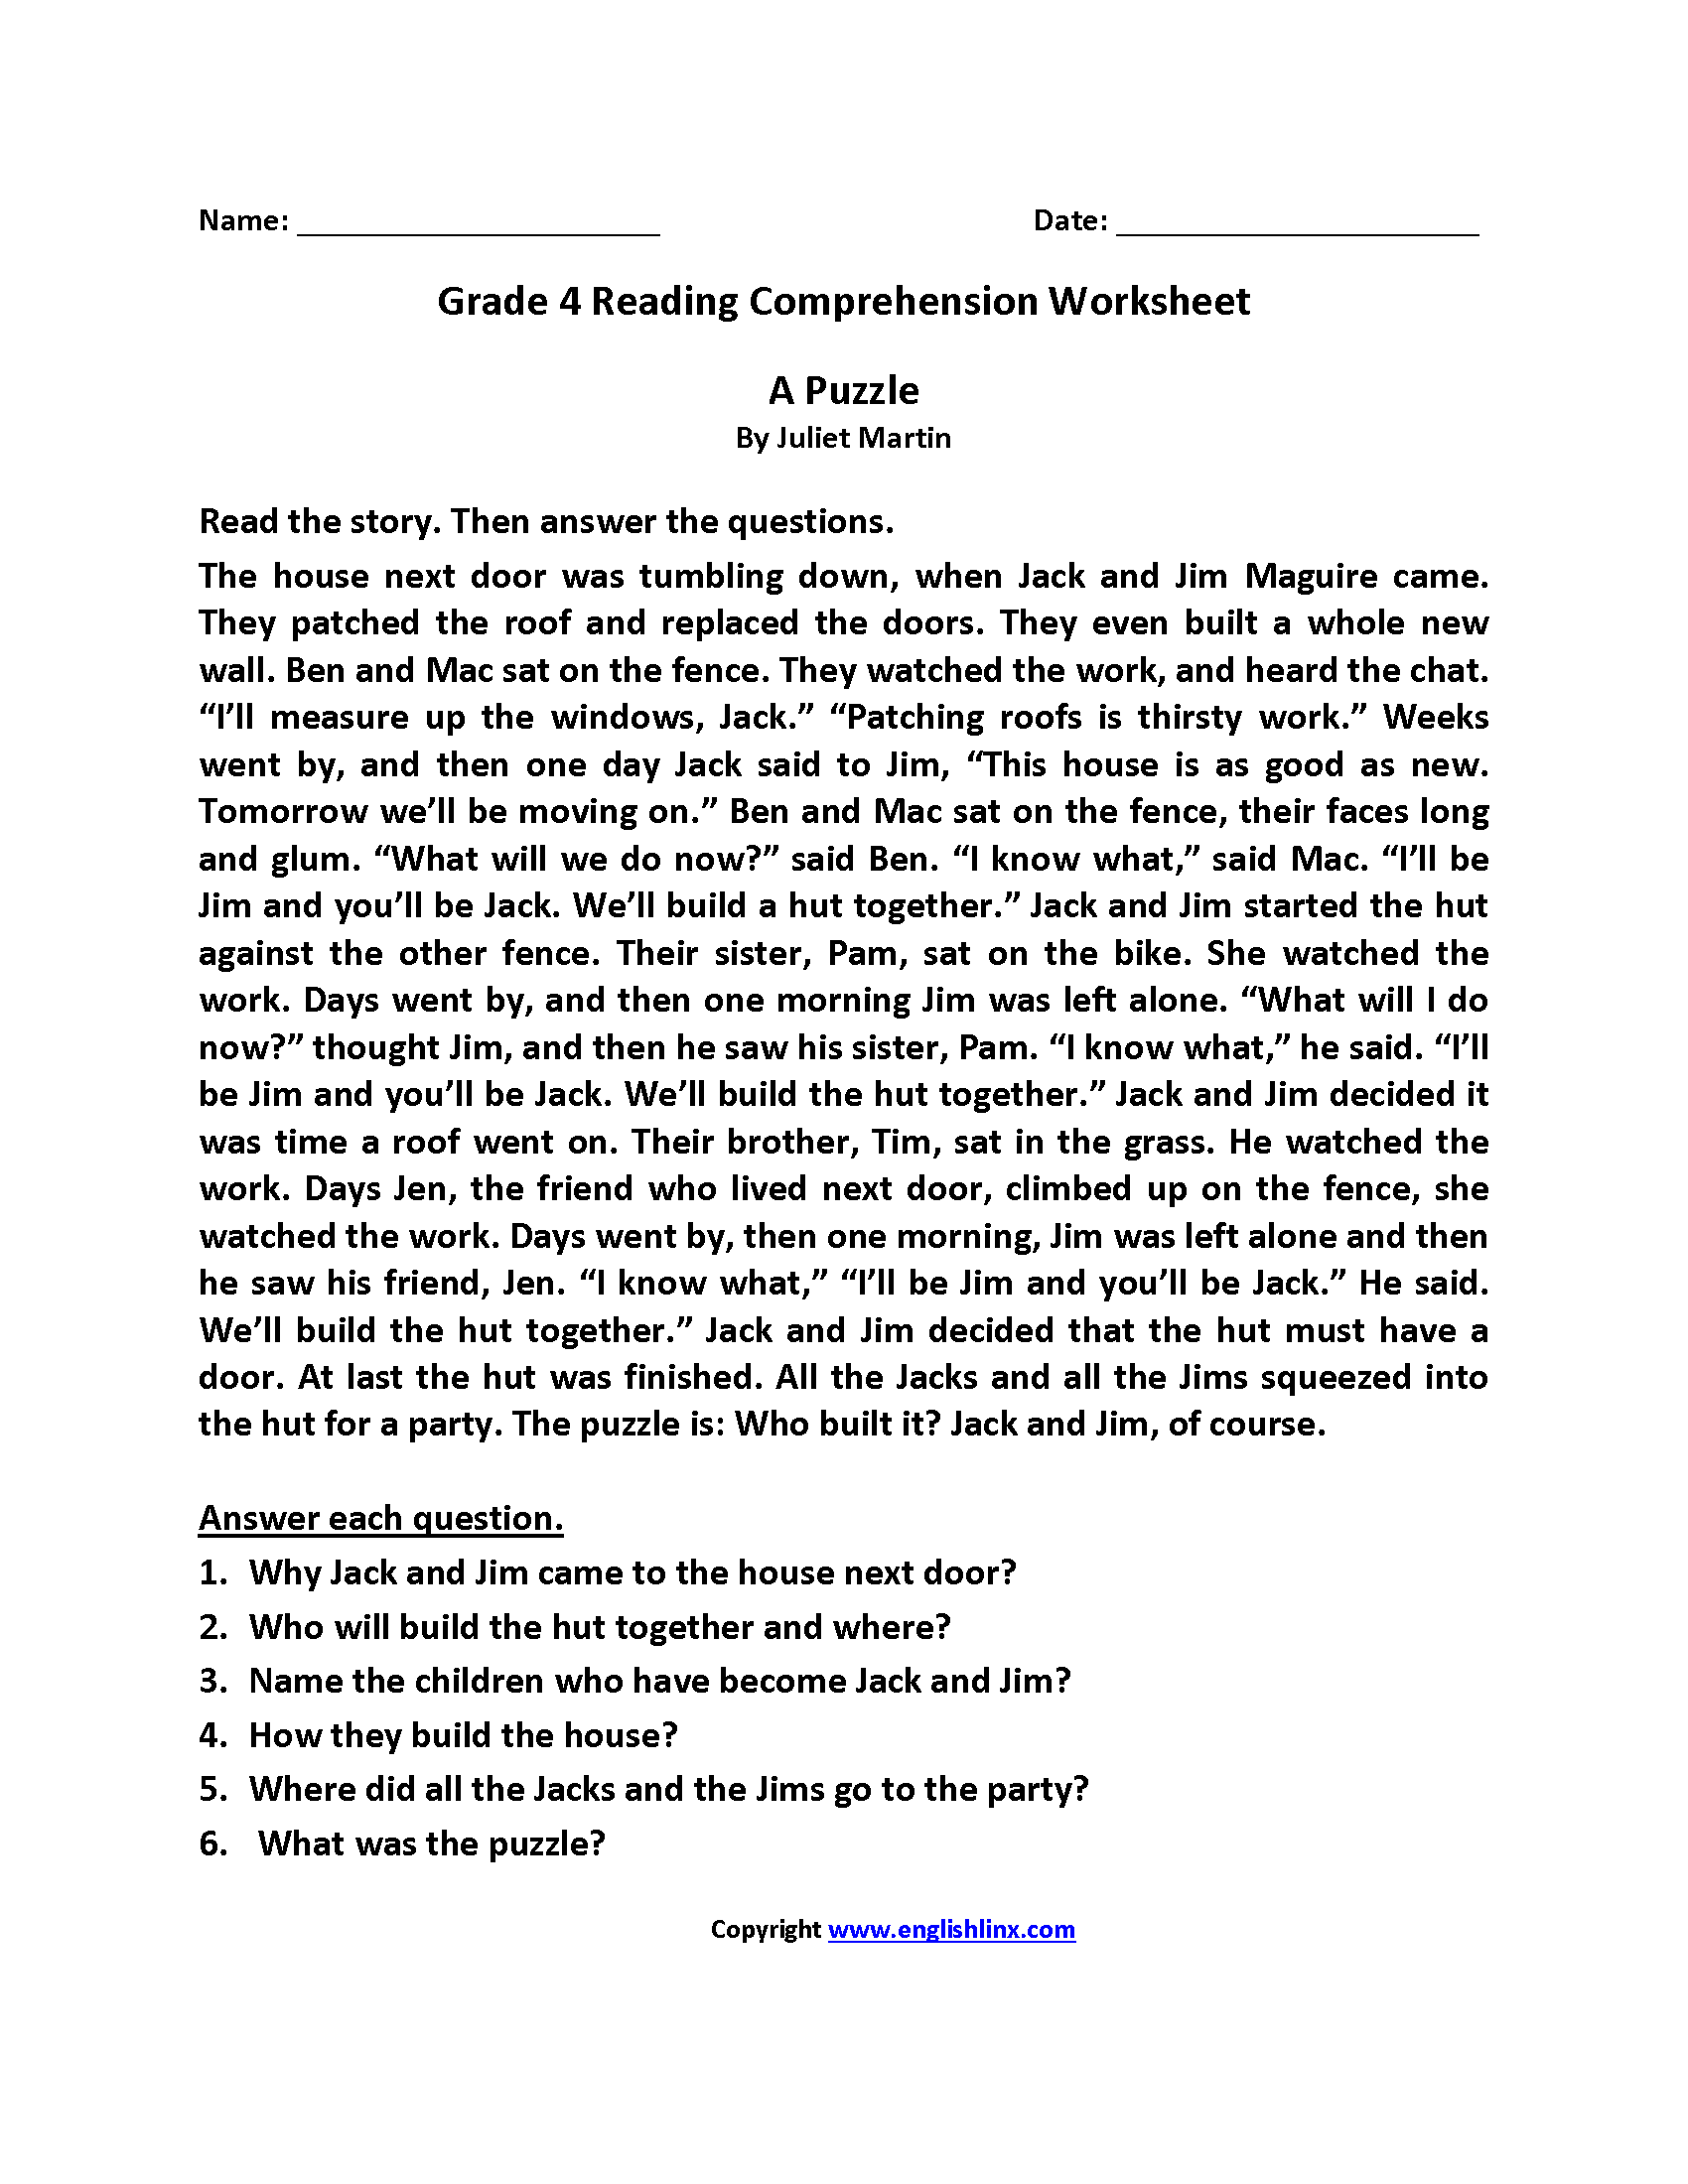 Worksheets Reading Comprehension Worksheets 4th Grade reading worksheets for 4th grade switchconf fourth import export comprehension worksheet